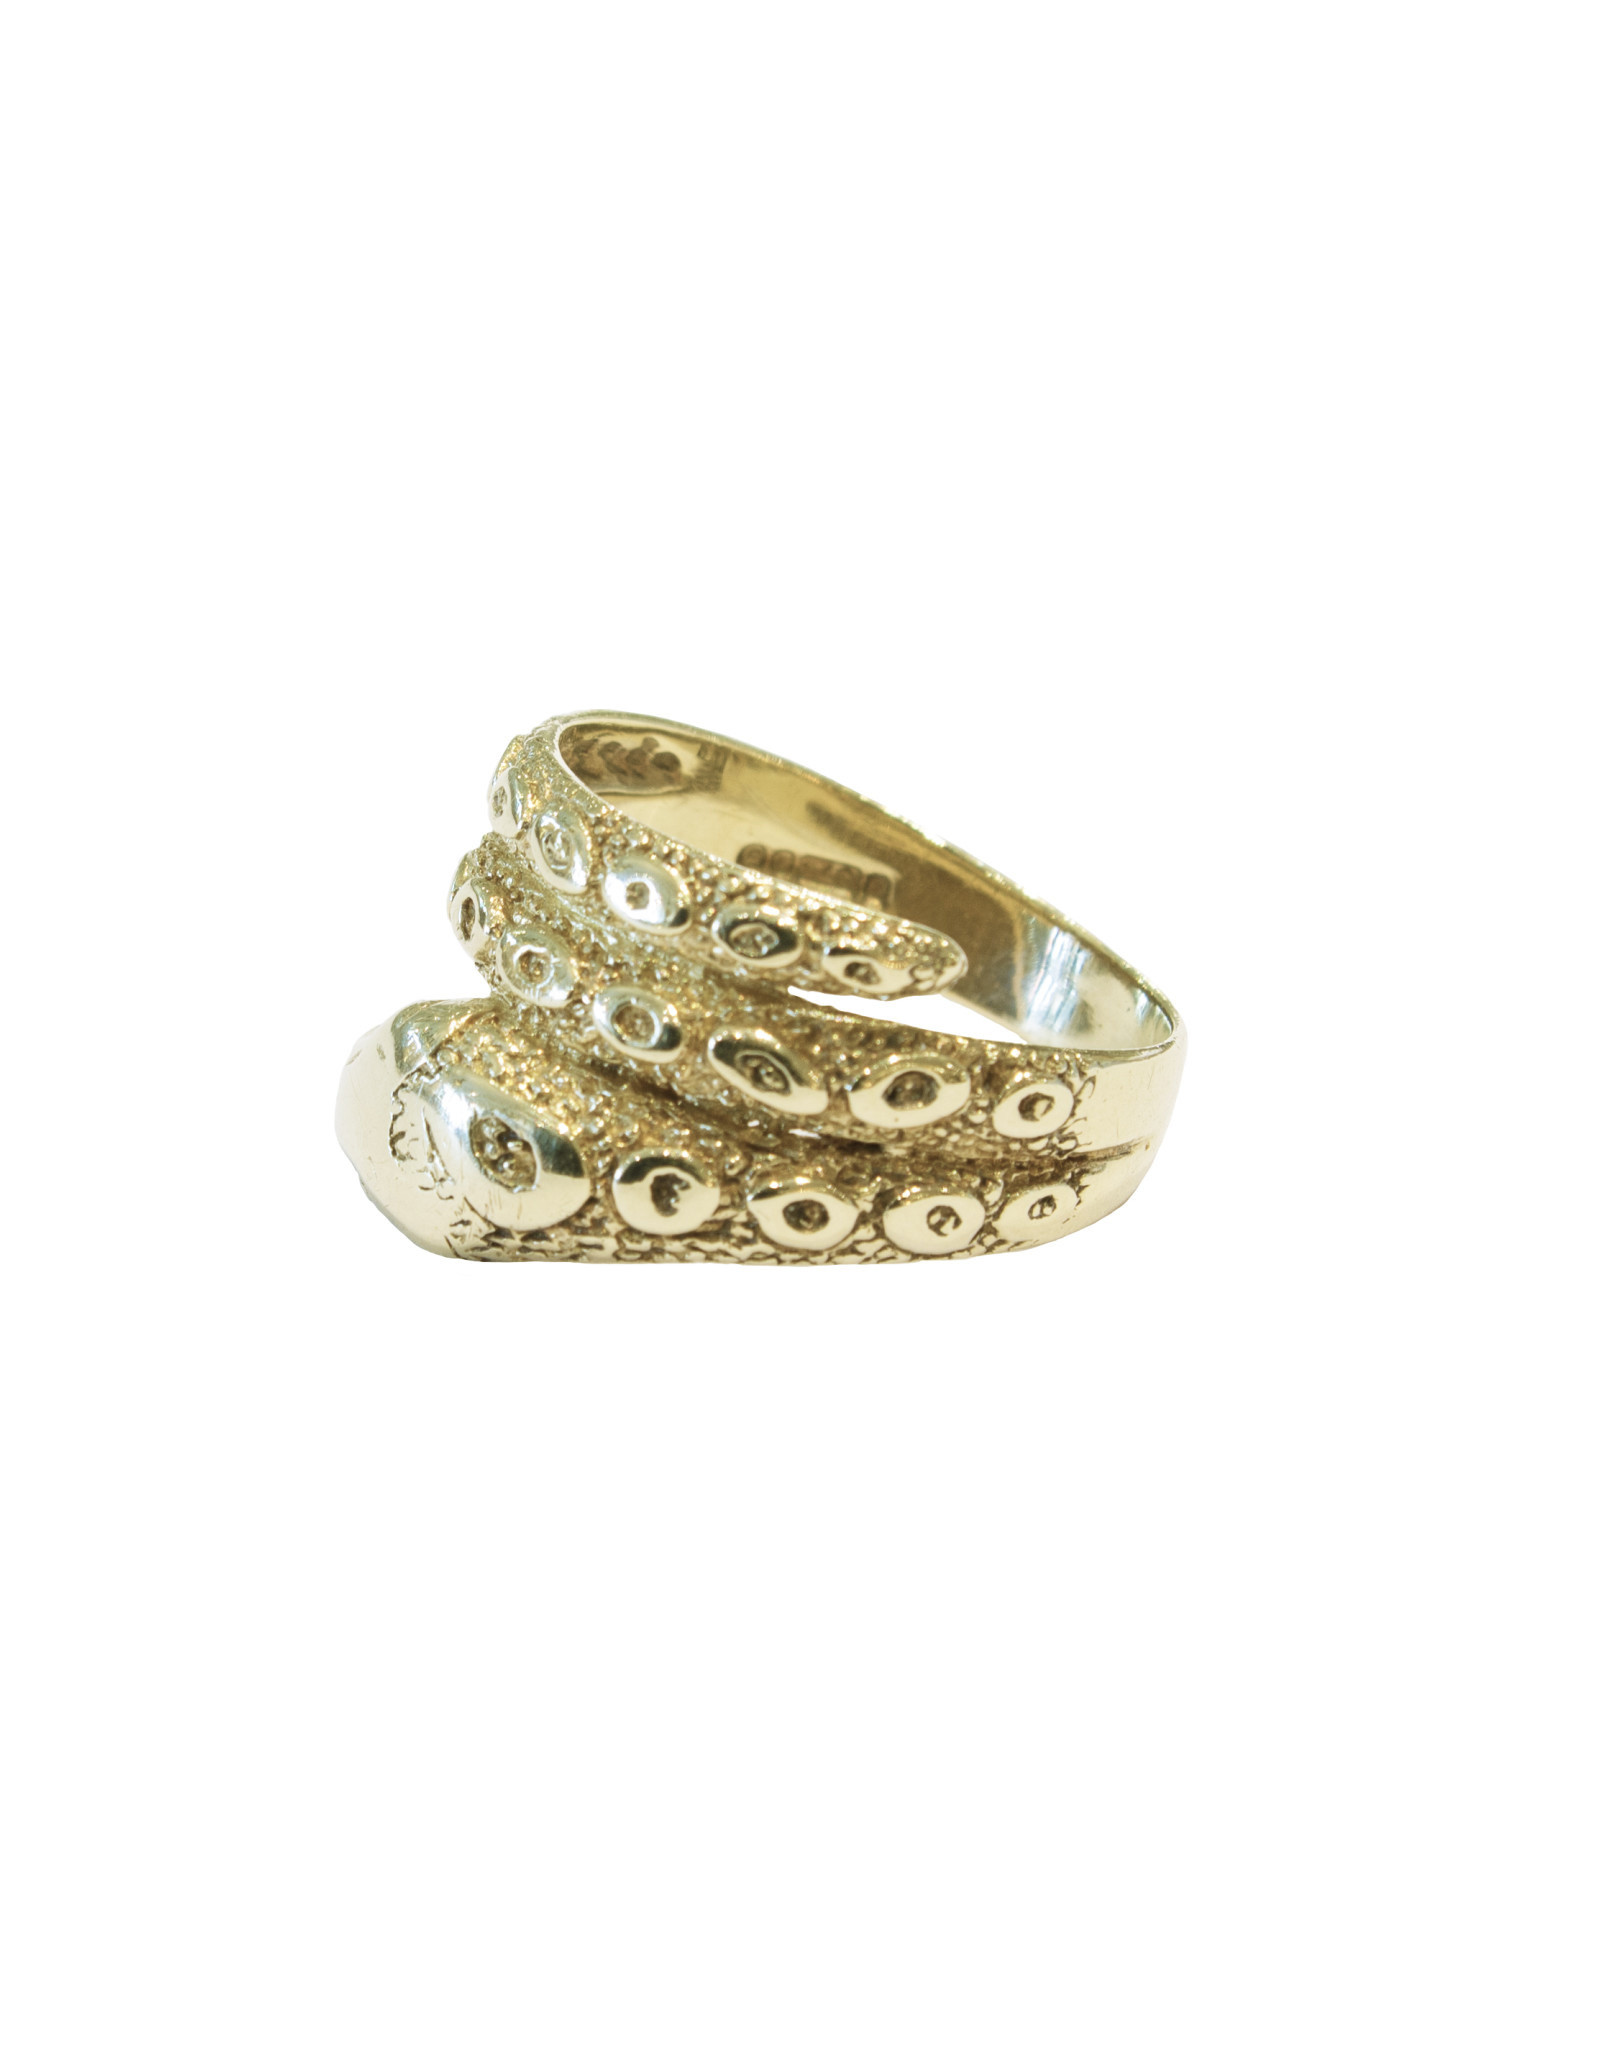 Antique 9 Ct. Gold Snake Ring - Size 10 (~1900)